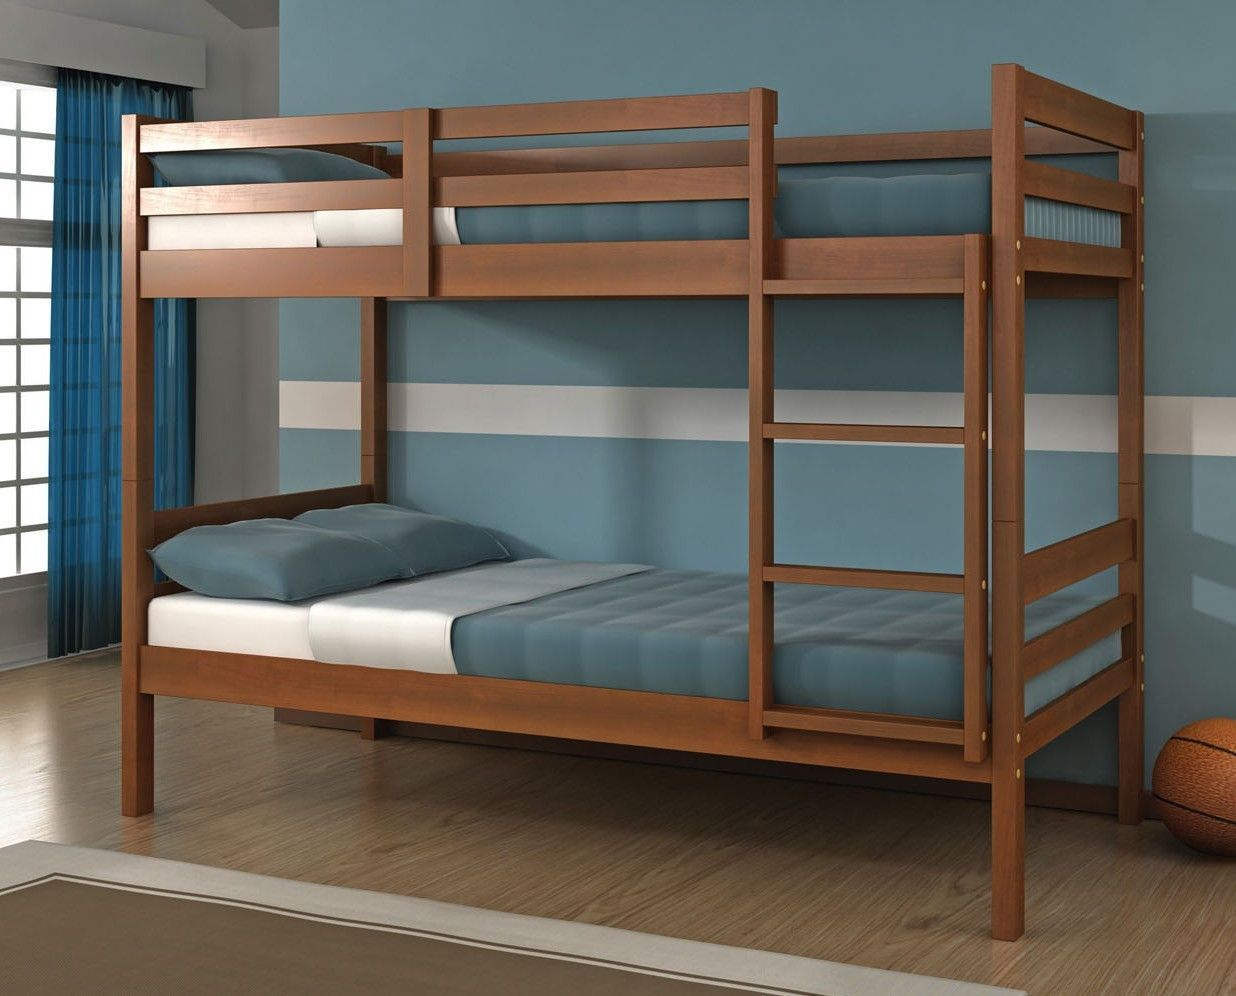 Modern double bunk beds - Solid Wood Bunk Beds